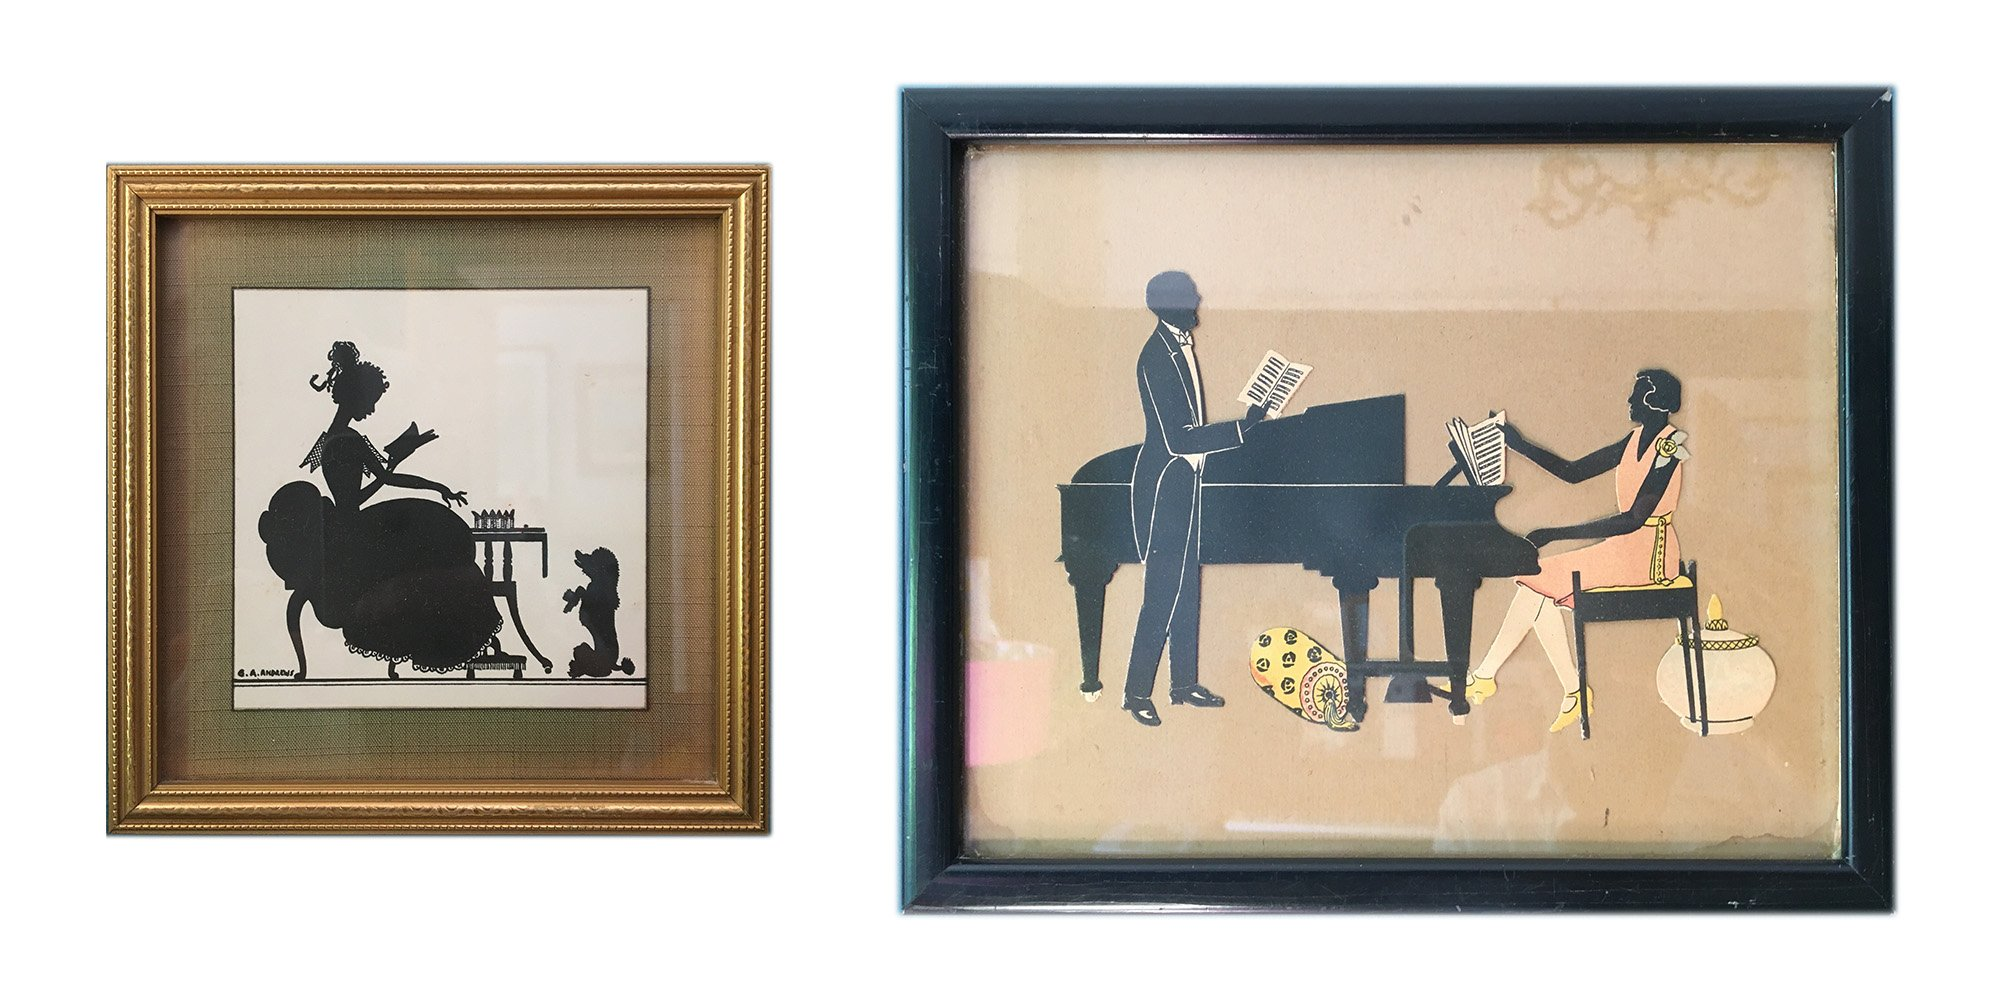 Two genre silhouettes in frames